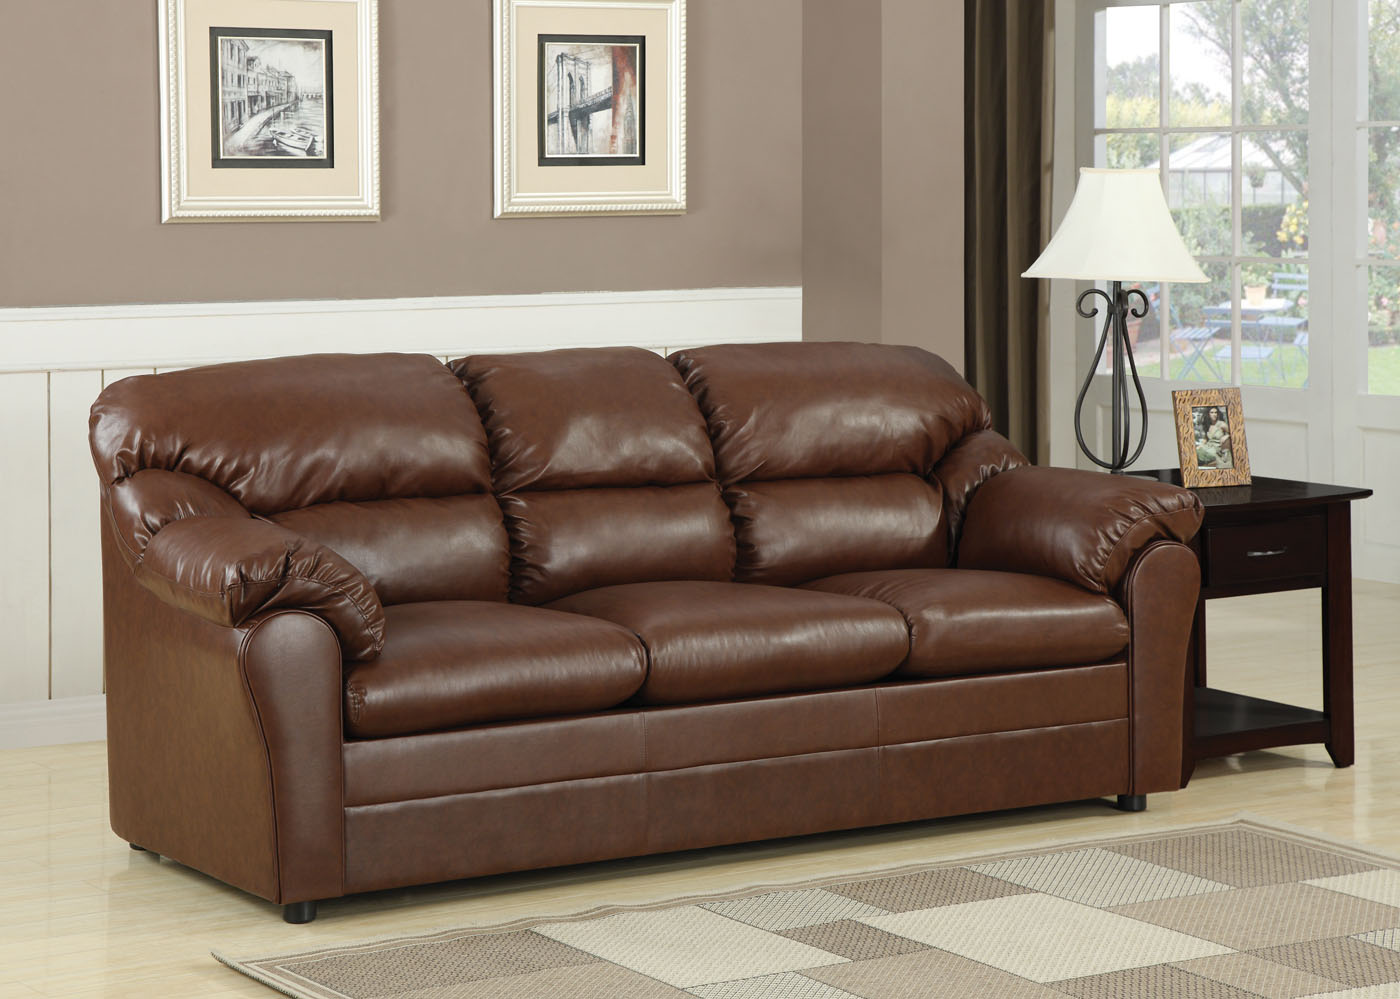 Acme Connell Bonded Leather Match Sofa Sleeper In Brown 15153